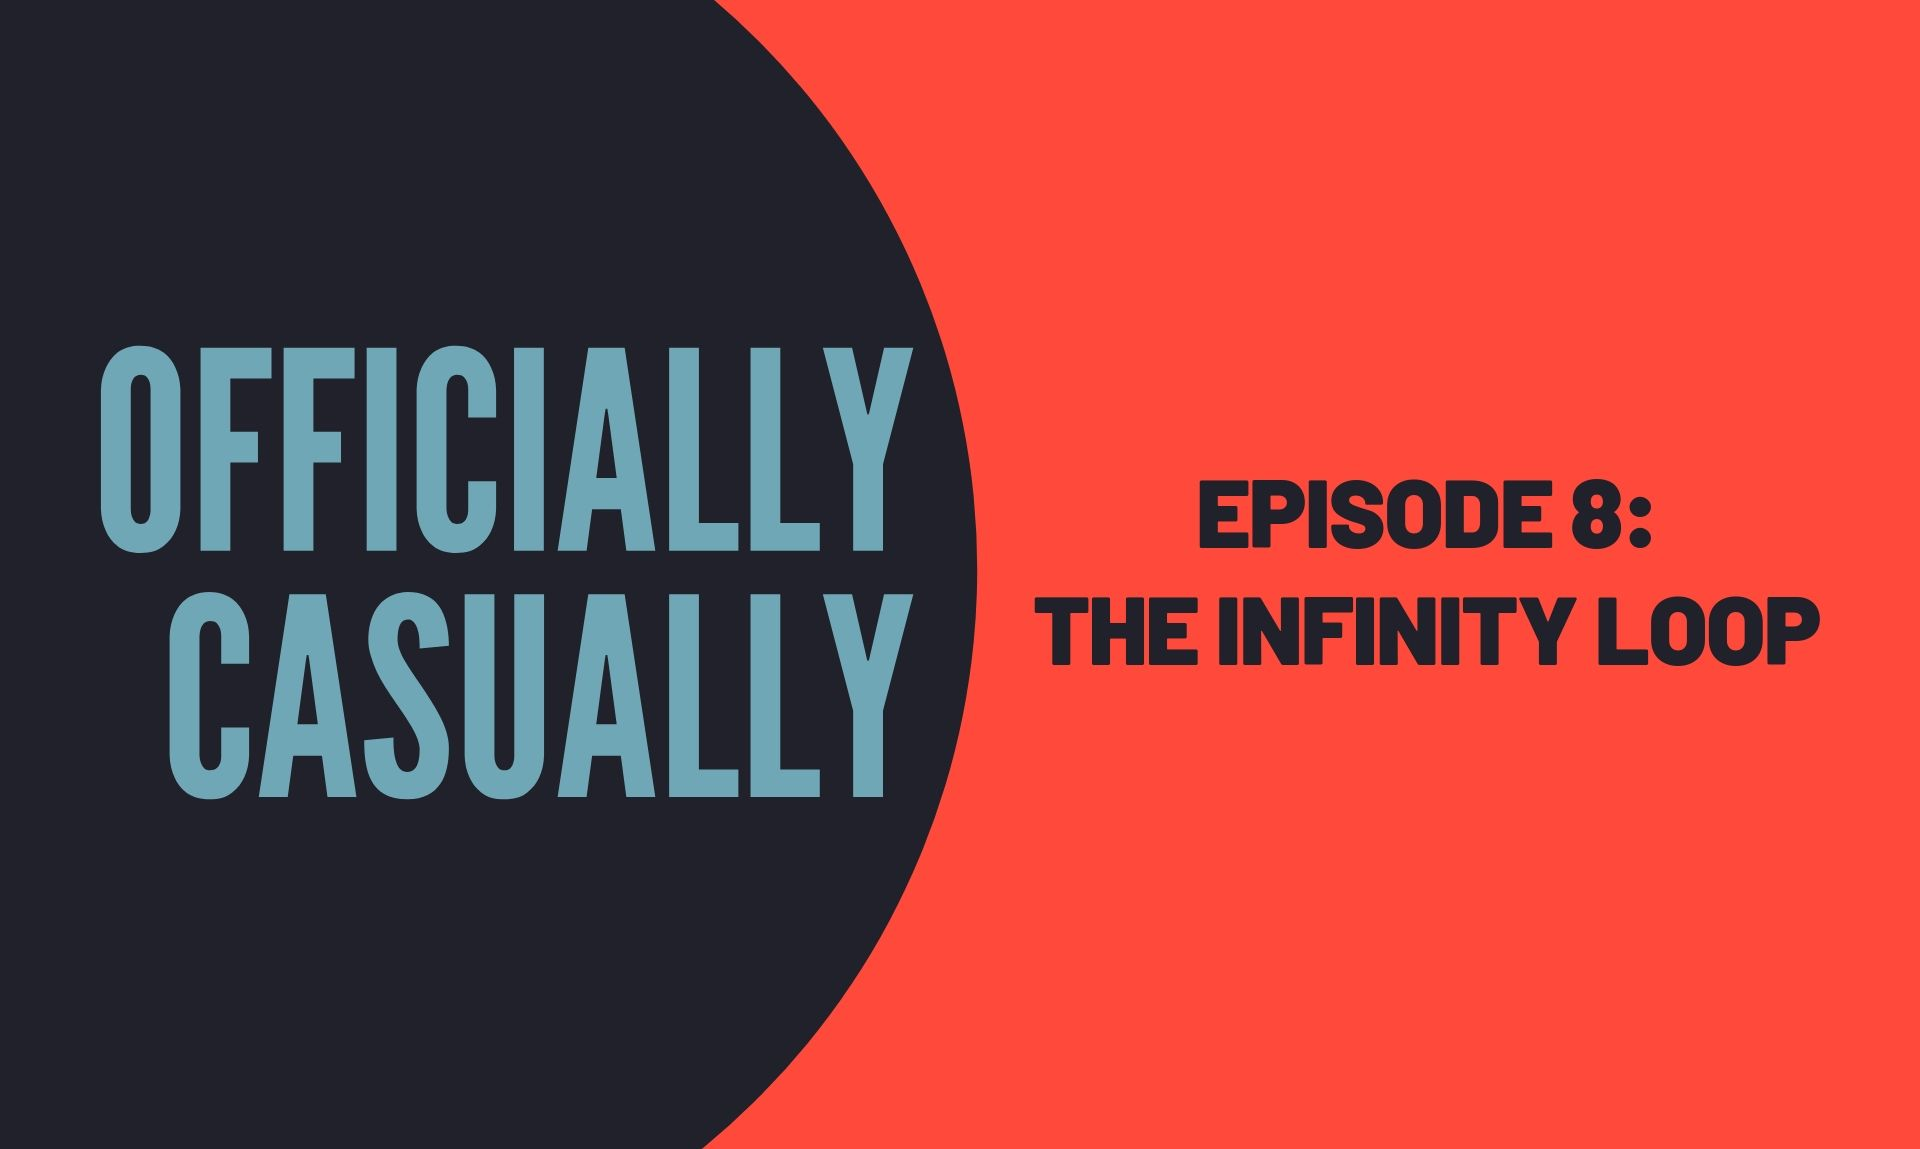 #8 EPISODE: THE INFINITY LOOP